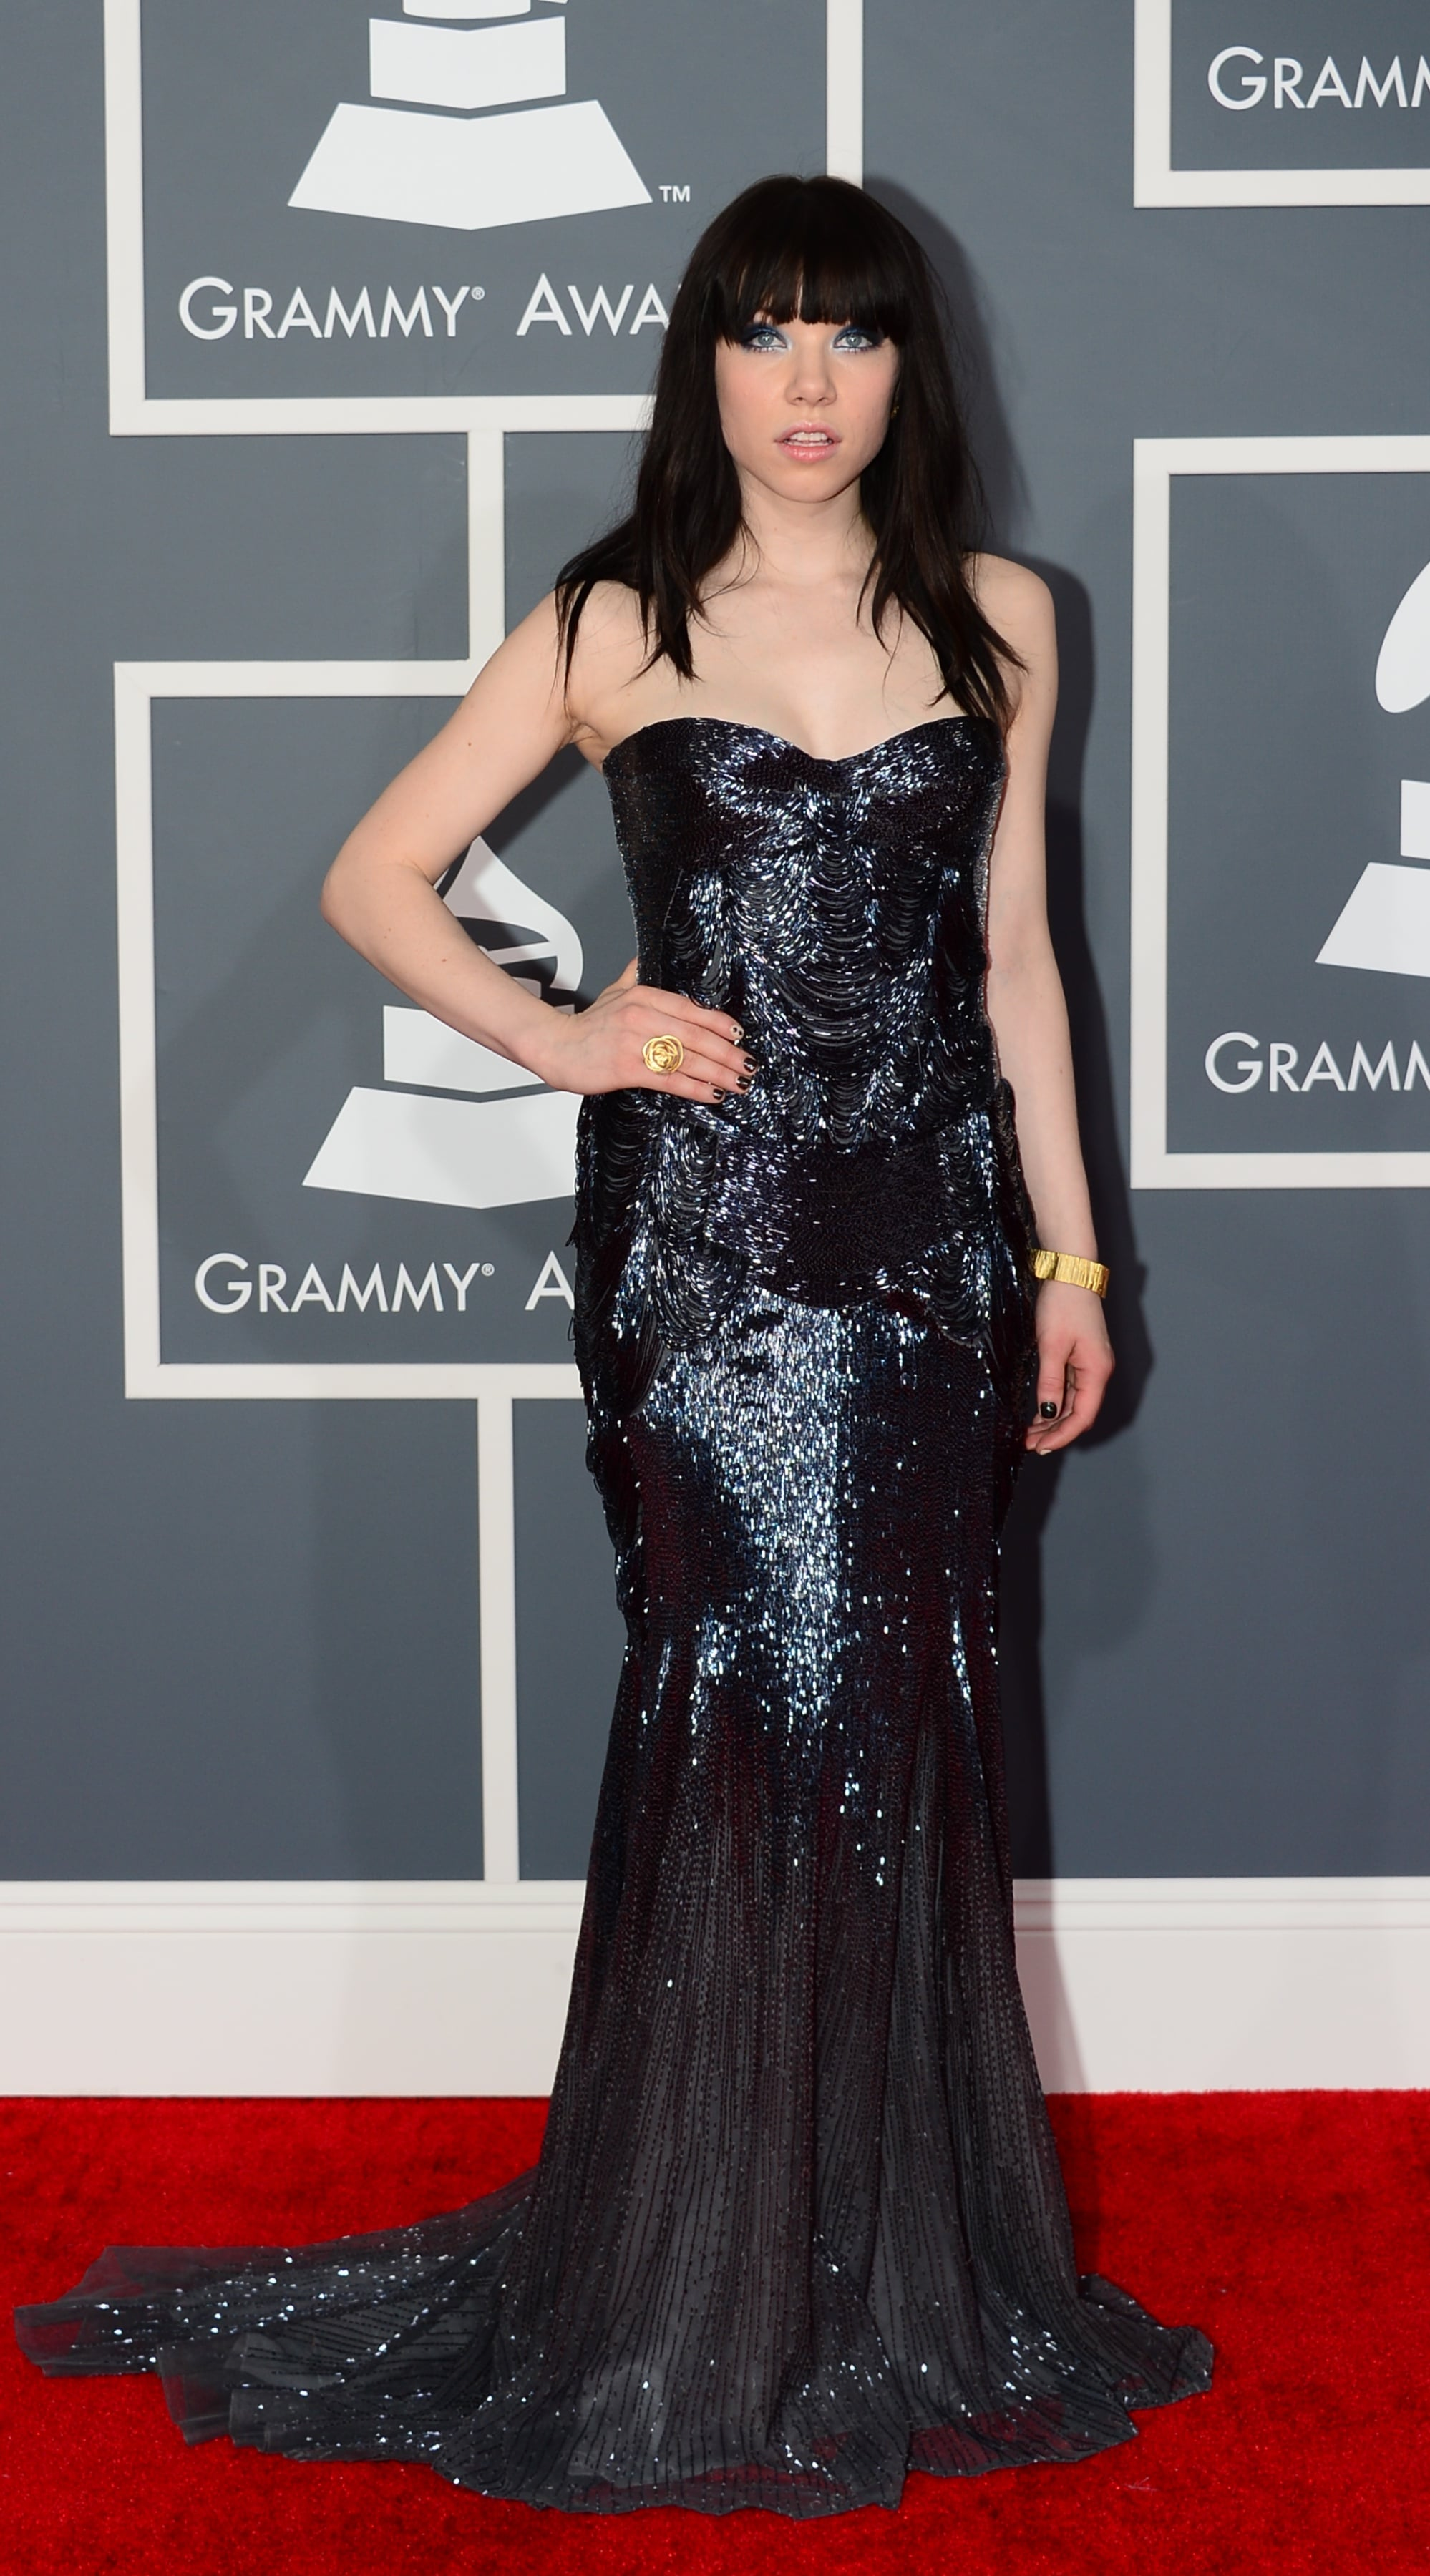 Carly Rae Jepsen struck a pose on the red carpet.